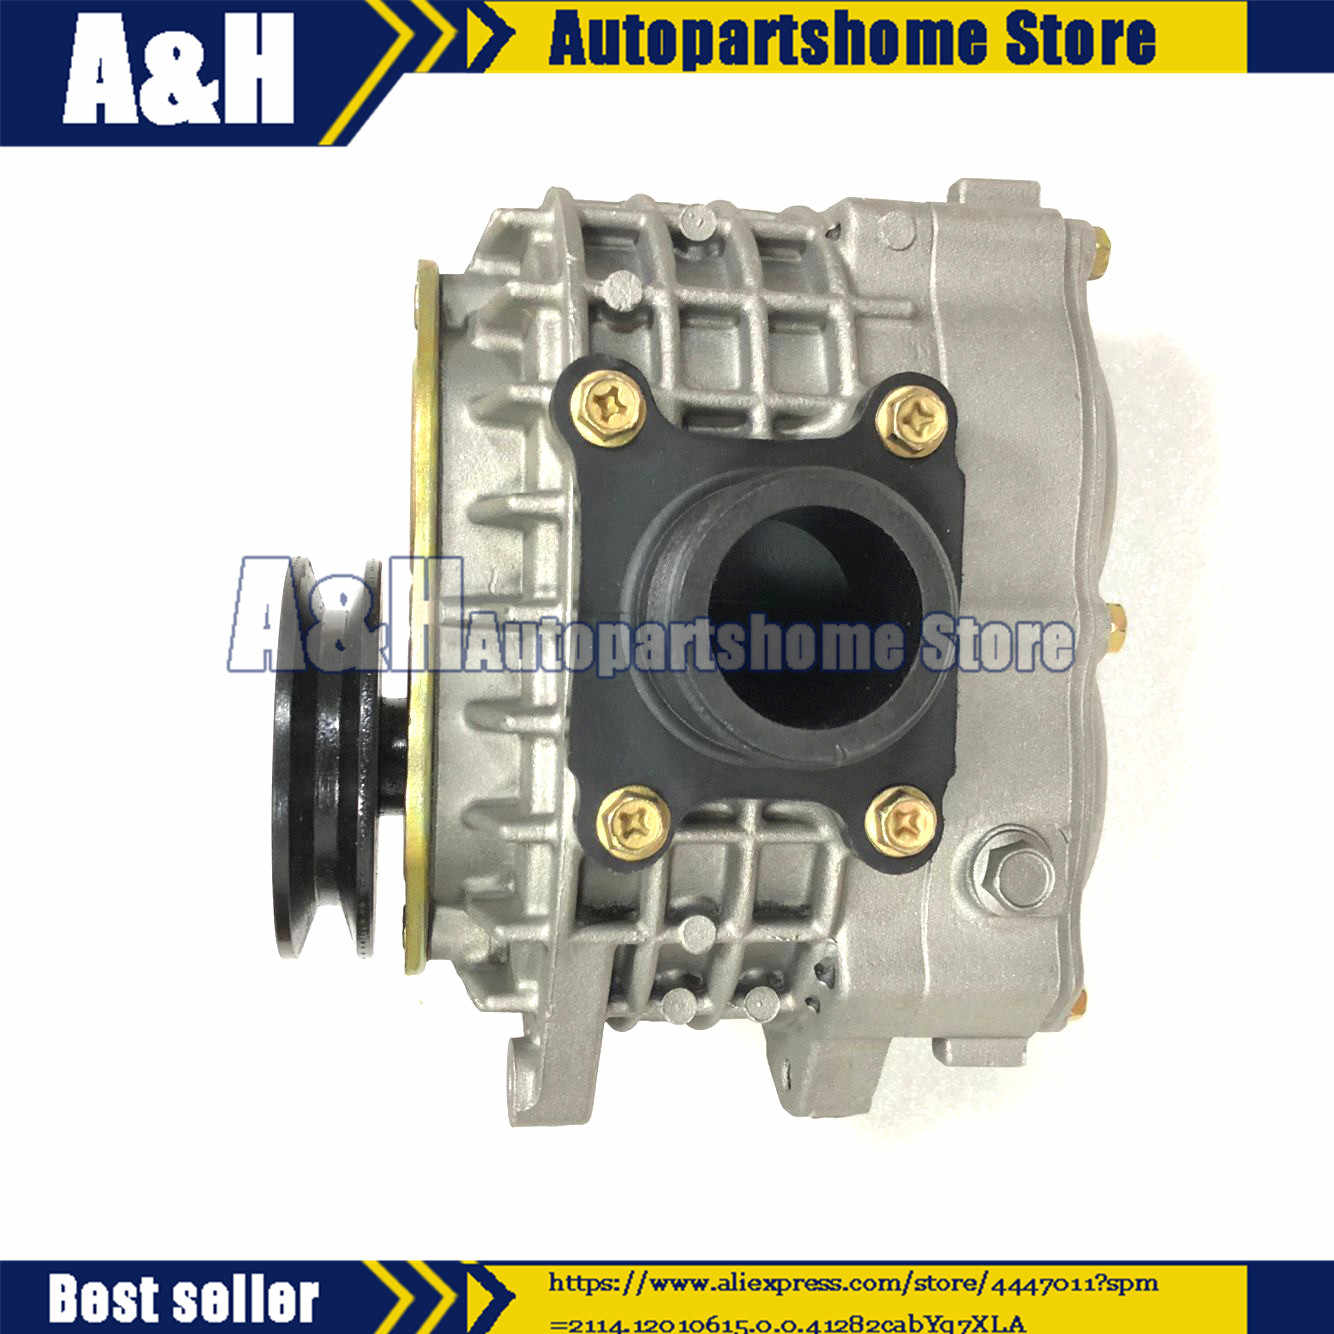 Remanufactured AMR500 for auto Roots supercharger Compressor